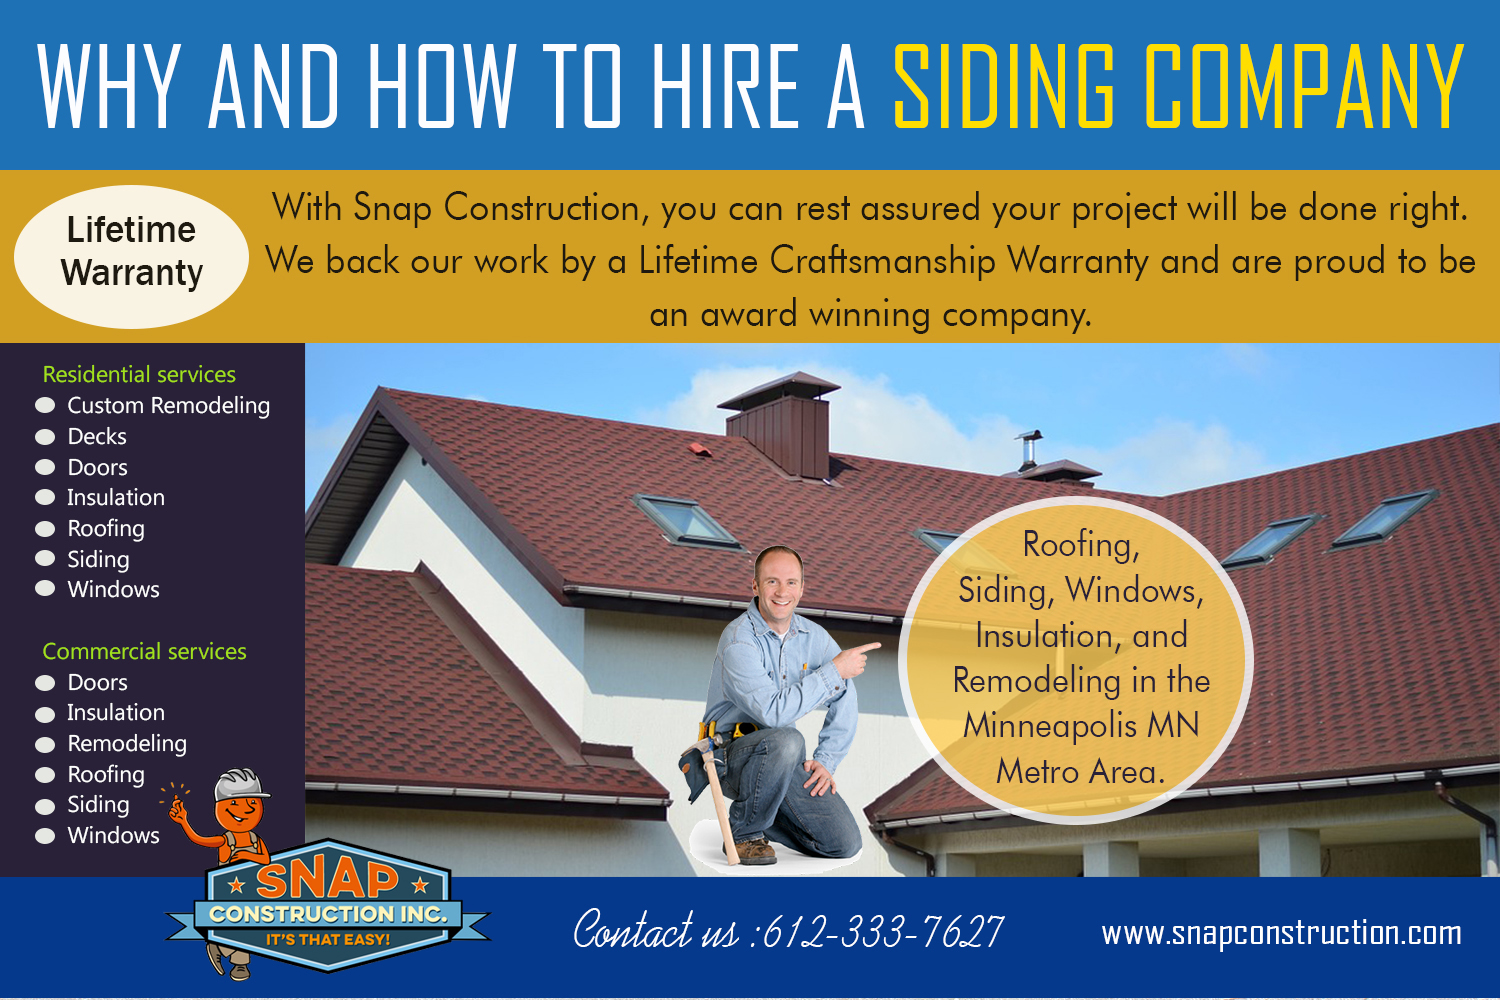 Why And How To Hire A Siding Company